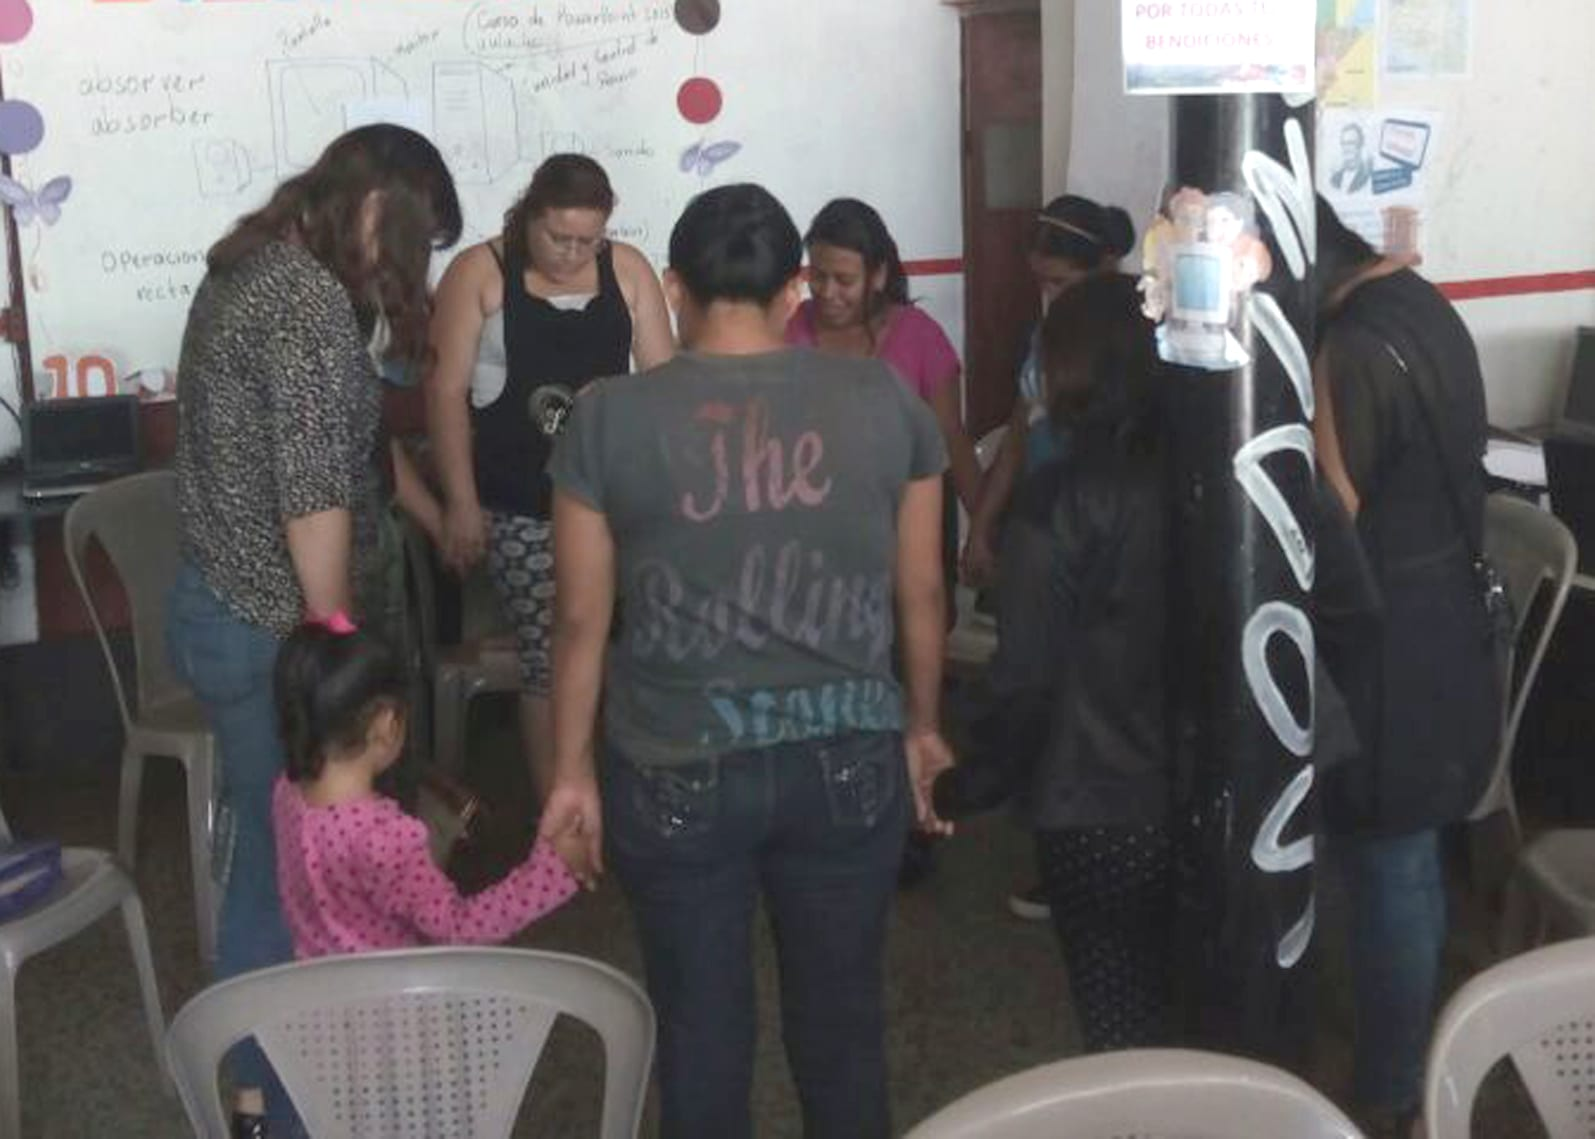 Sharie leading the women's bible study group in prayer